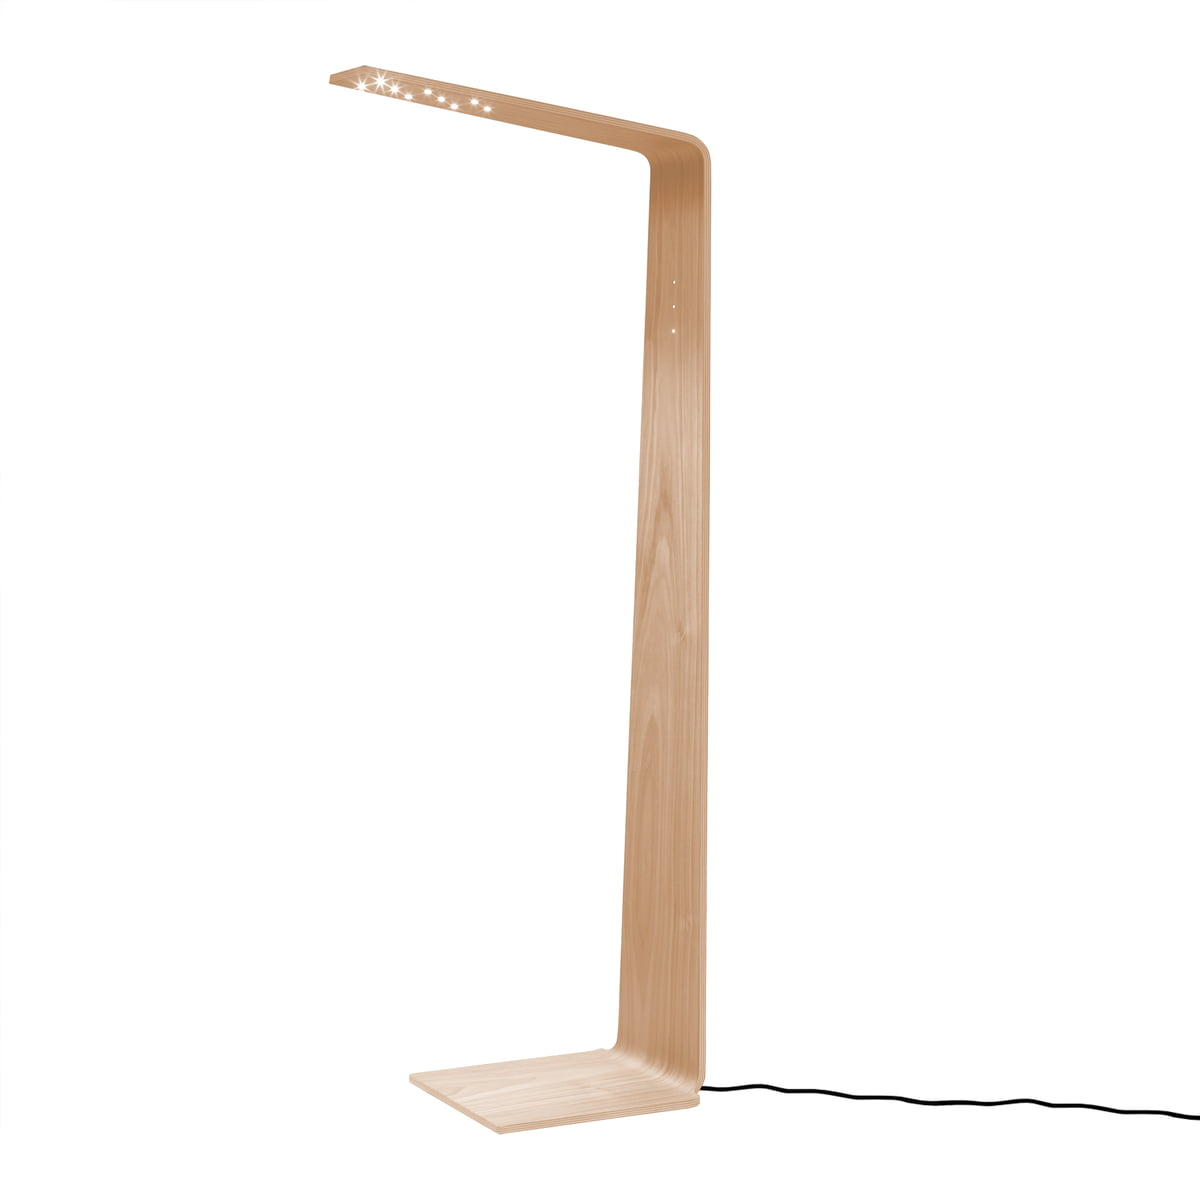 led 2 floor lamp by tunto in untreated oak wood